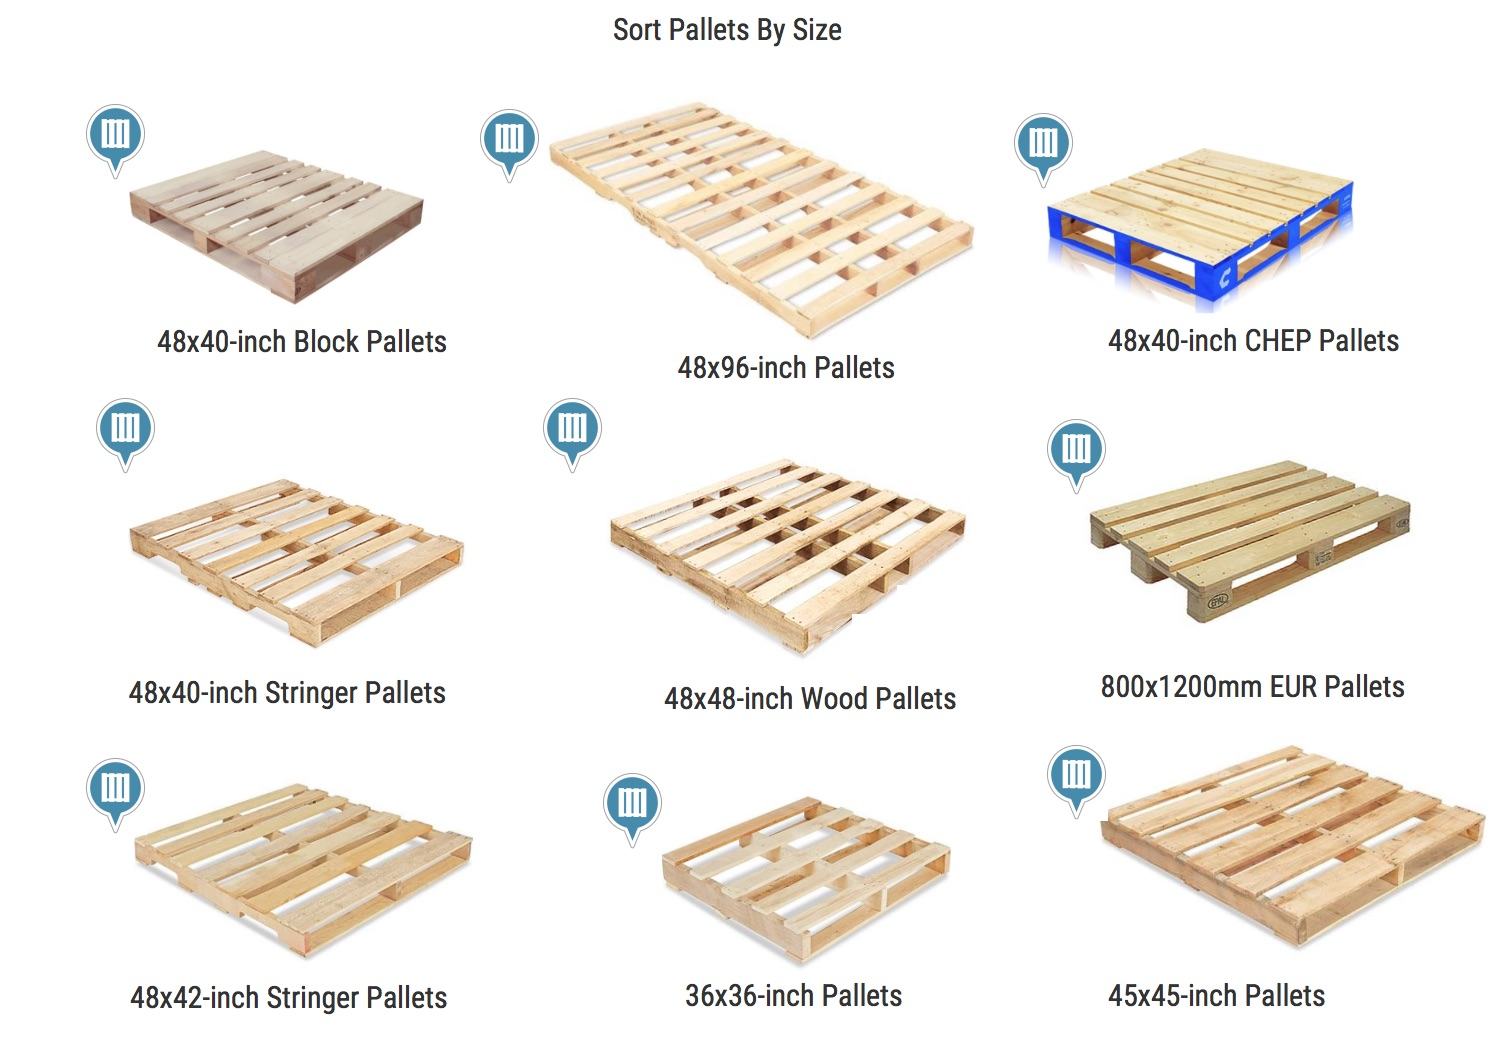 How To Sort Pallets